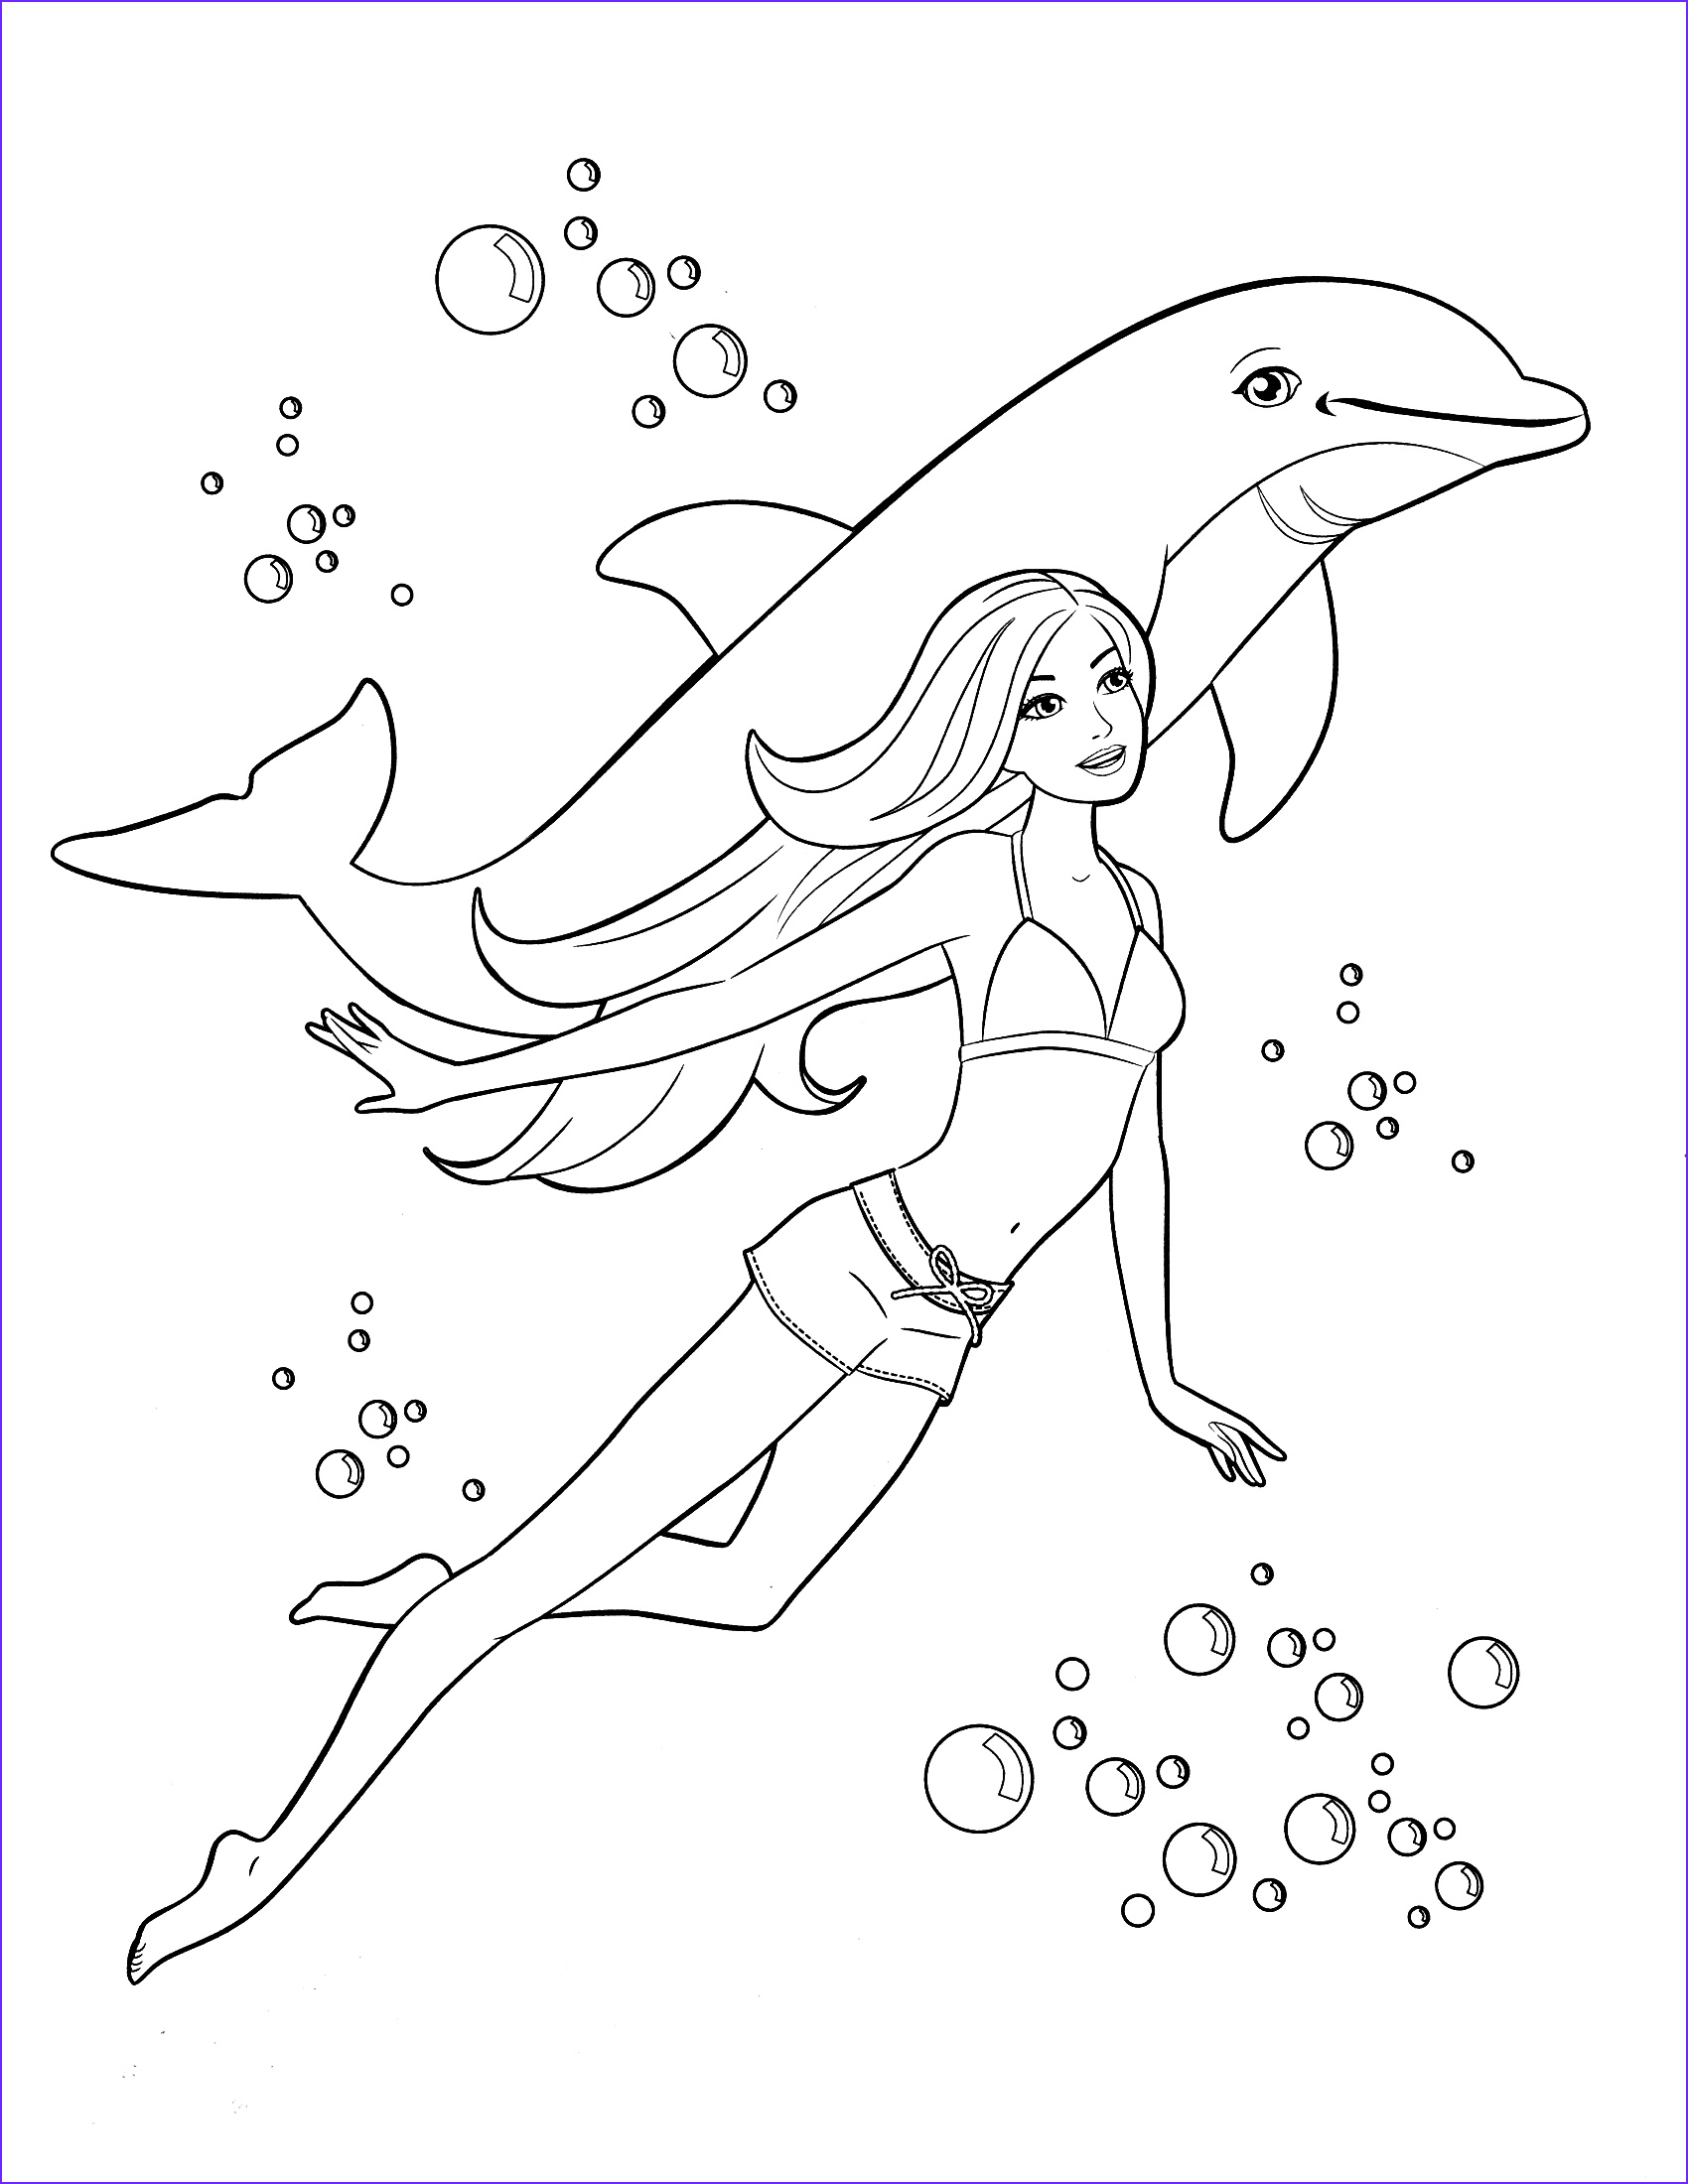 Free Printable Barbie Coloring Pages Cool Collection 85 Barbie Coloring Pages for Girls Barbie Princess